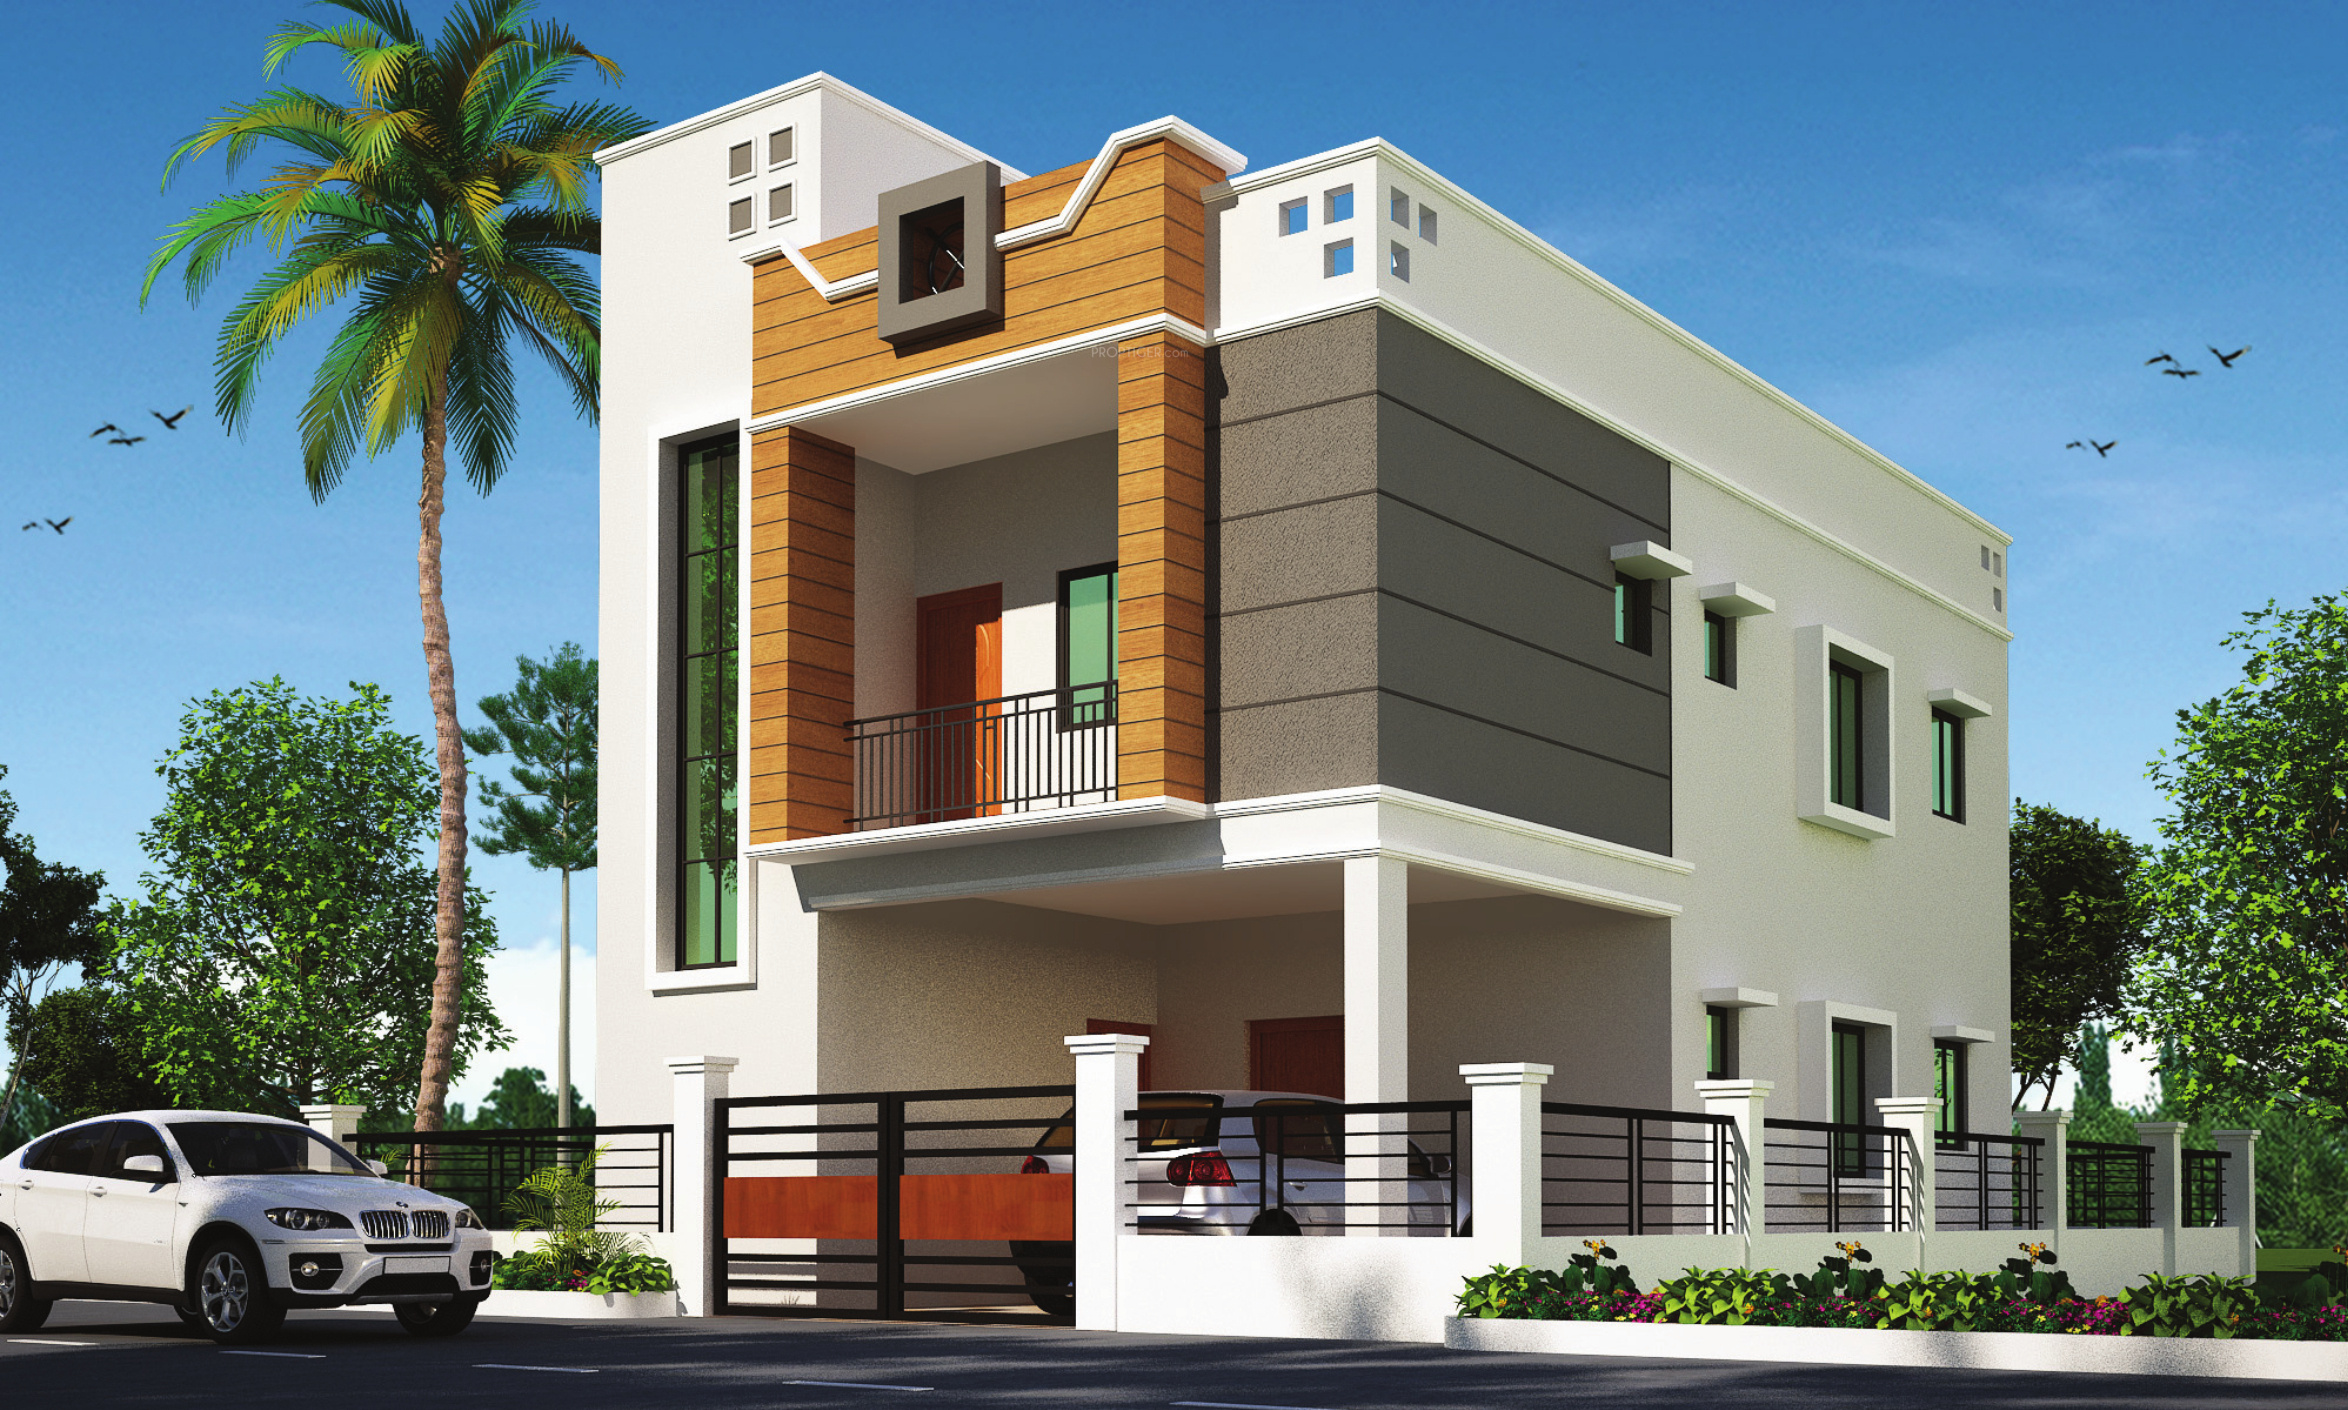 Front Elevation Of Houses In Jodhpur : Main elevation image of shree sidhi vinayak buildcon